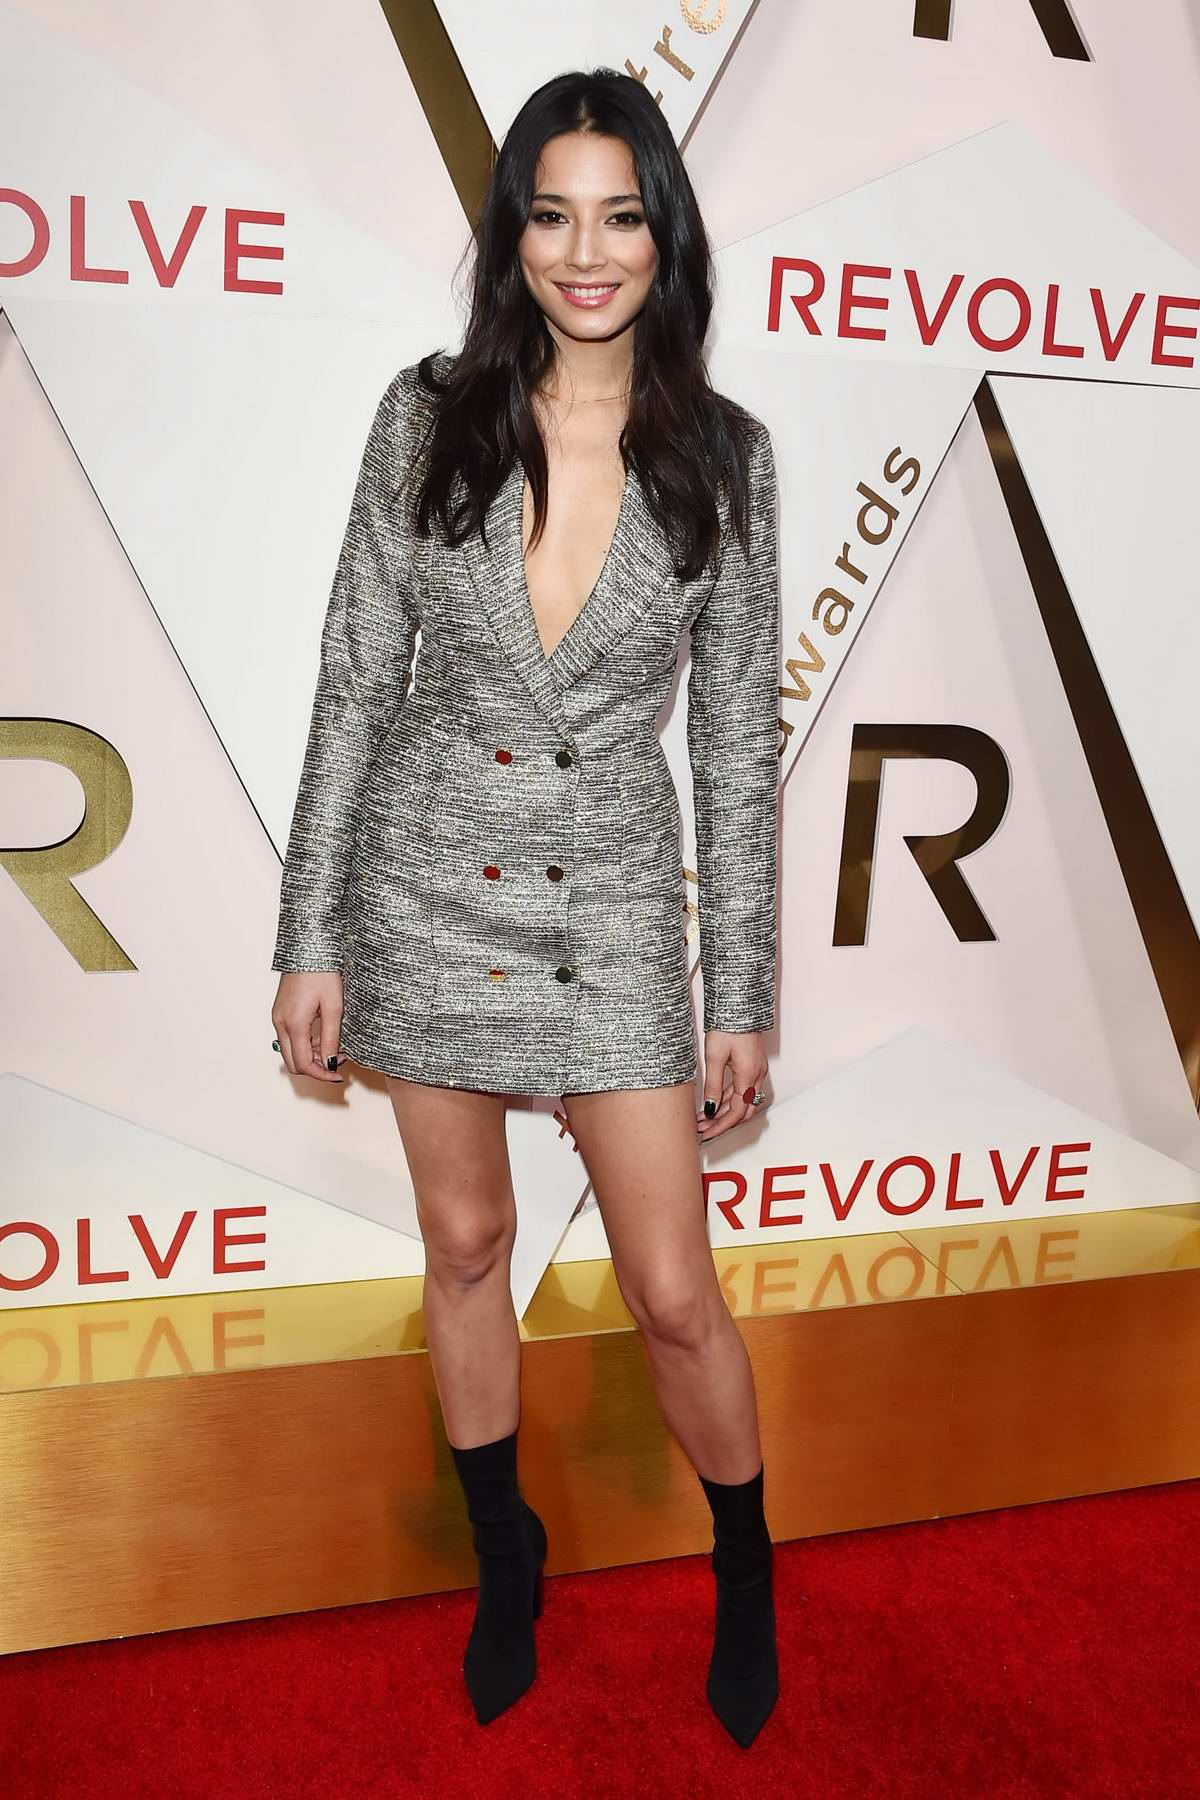 Jessica Gomes at the REVOLVE Awards in Los Angeles